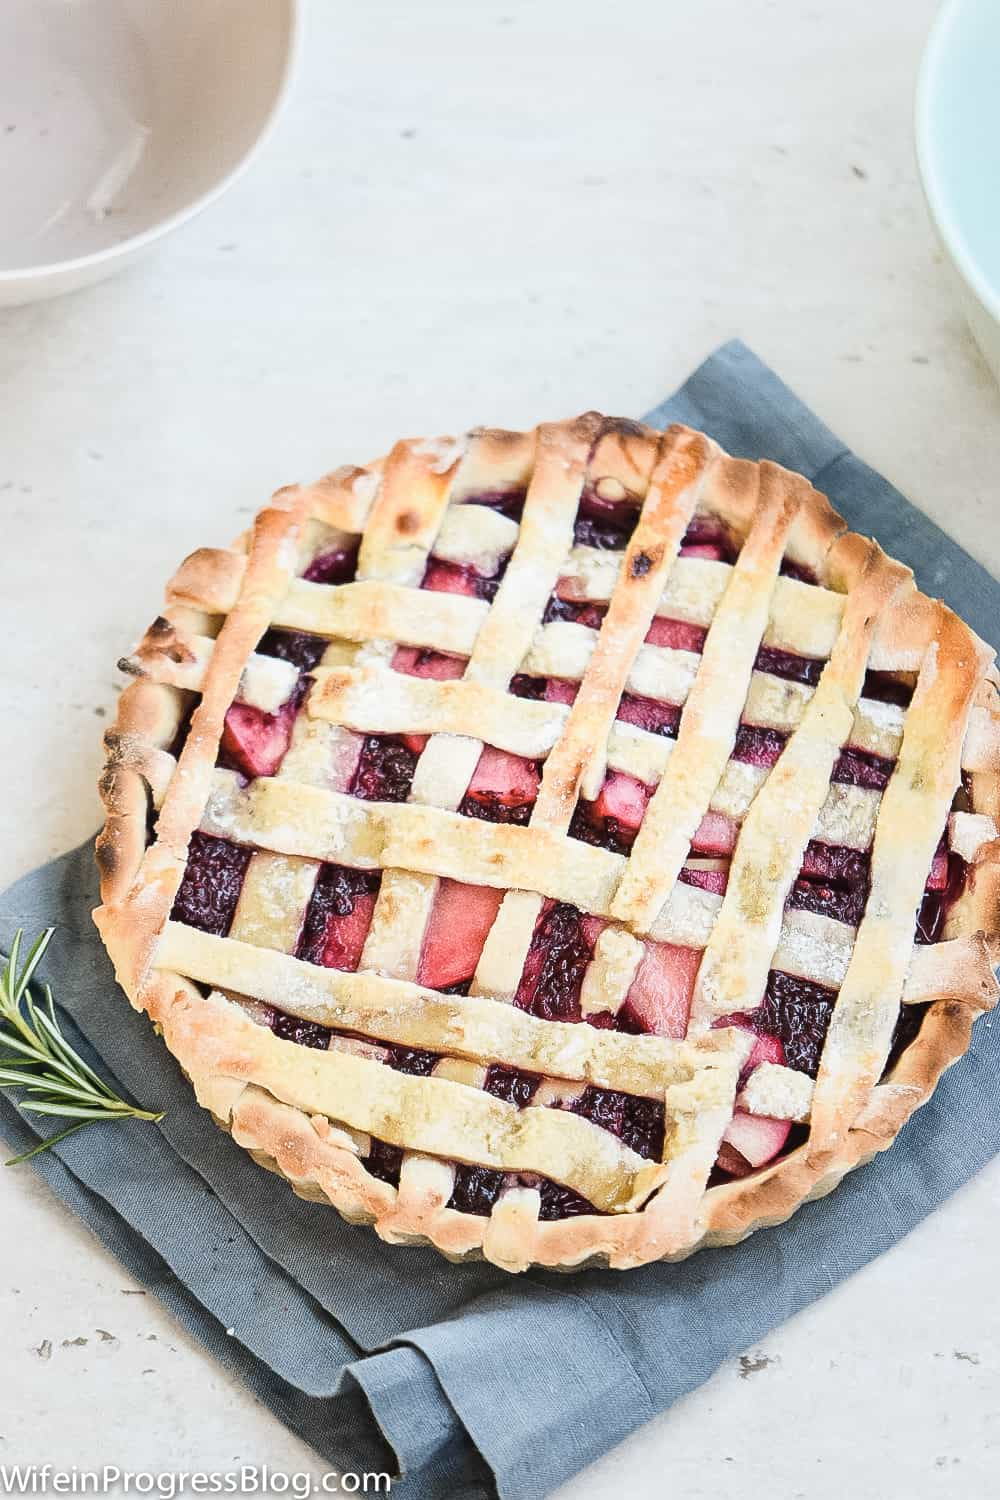 rustic pie filled with blackberries and apples